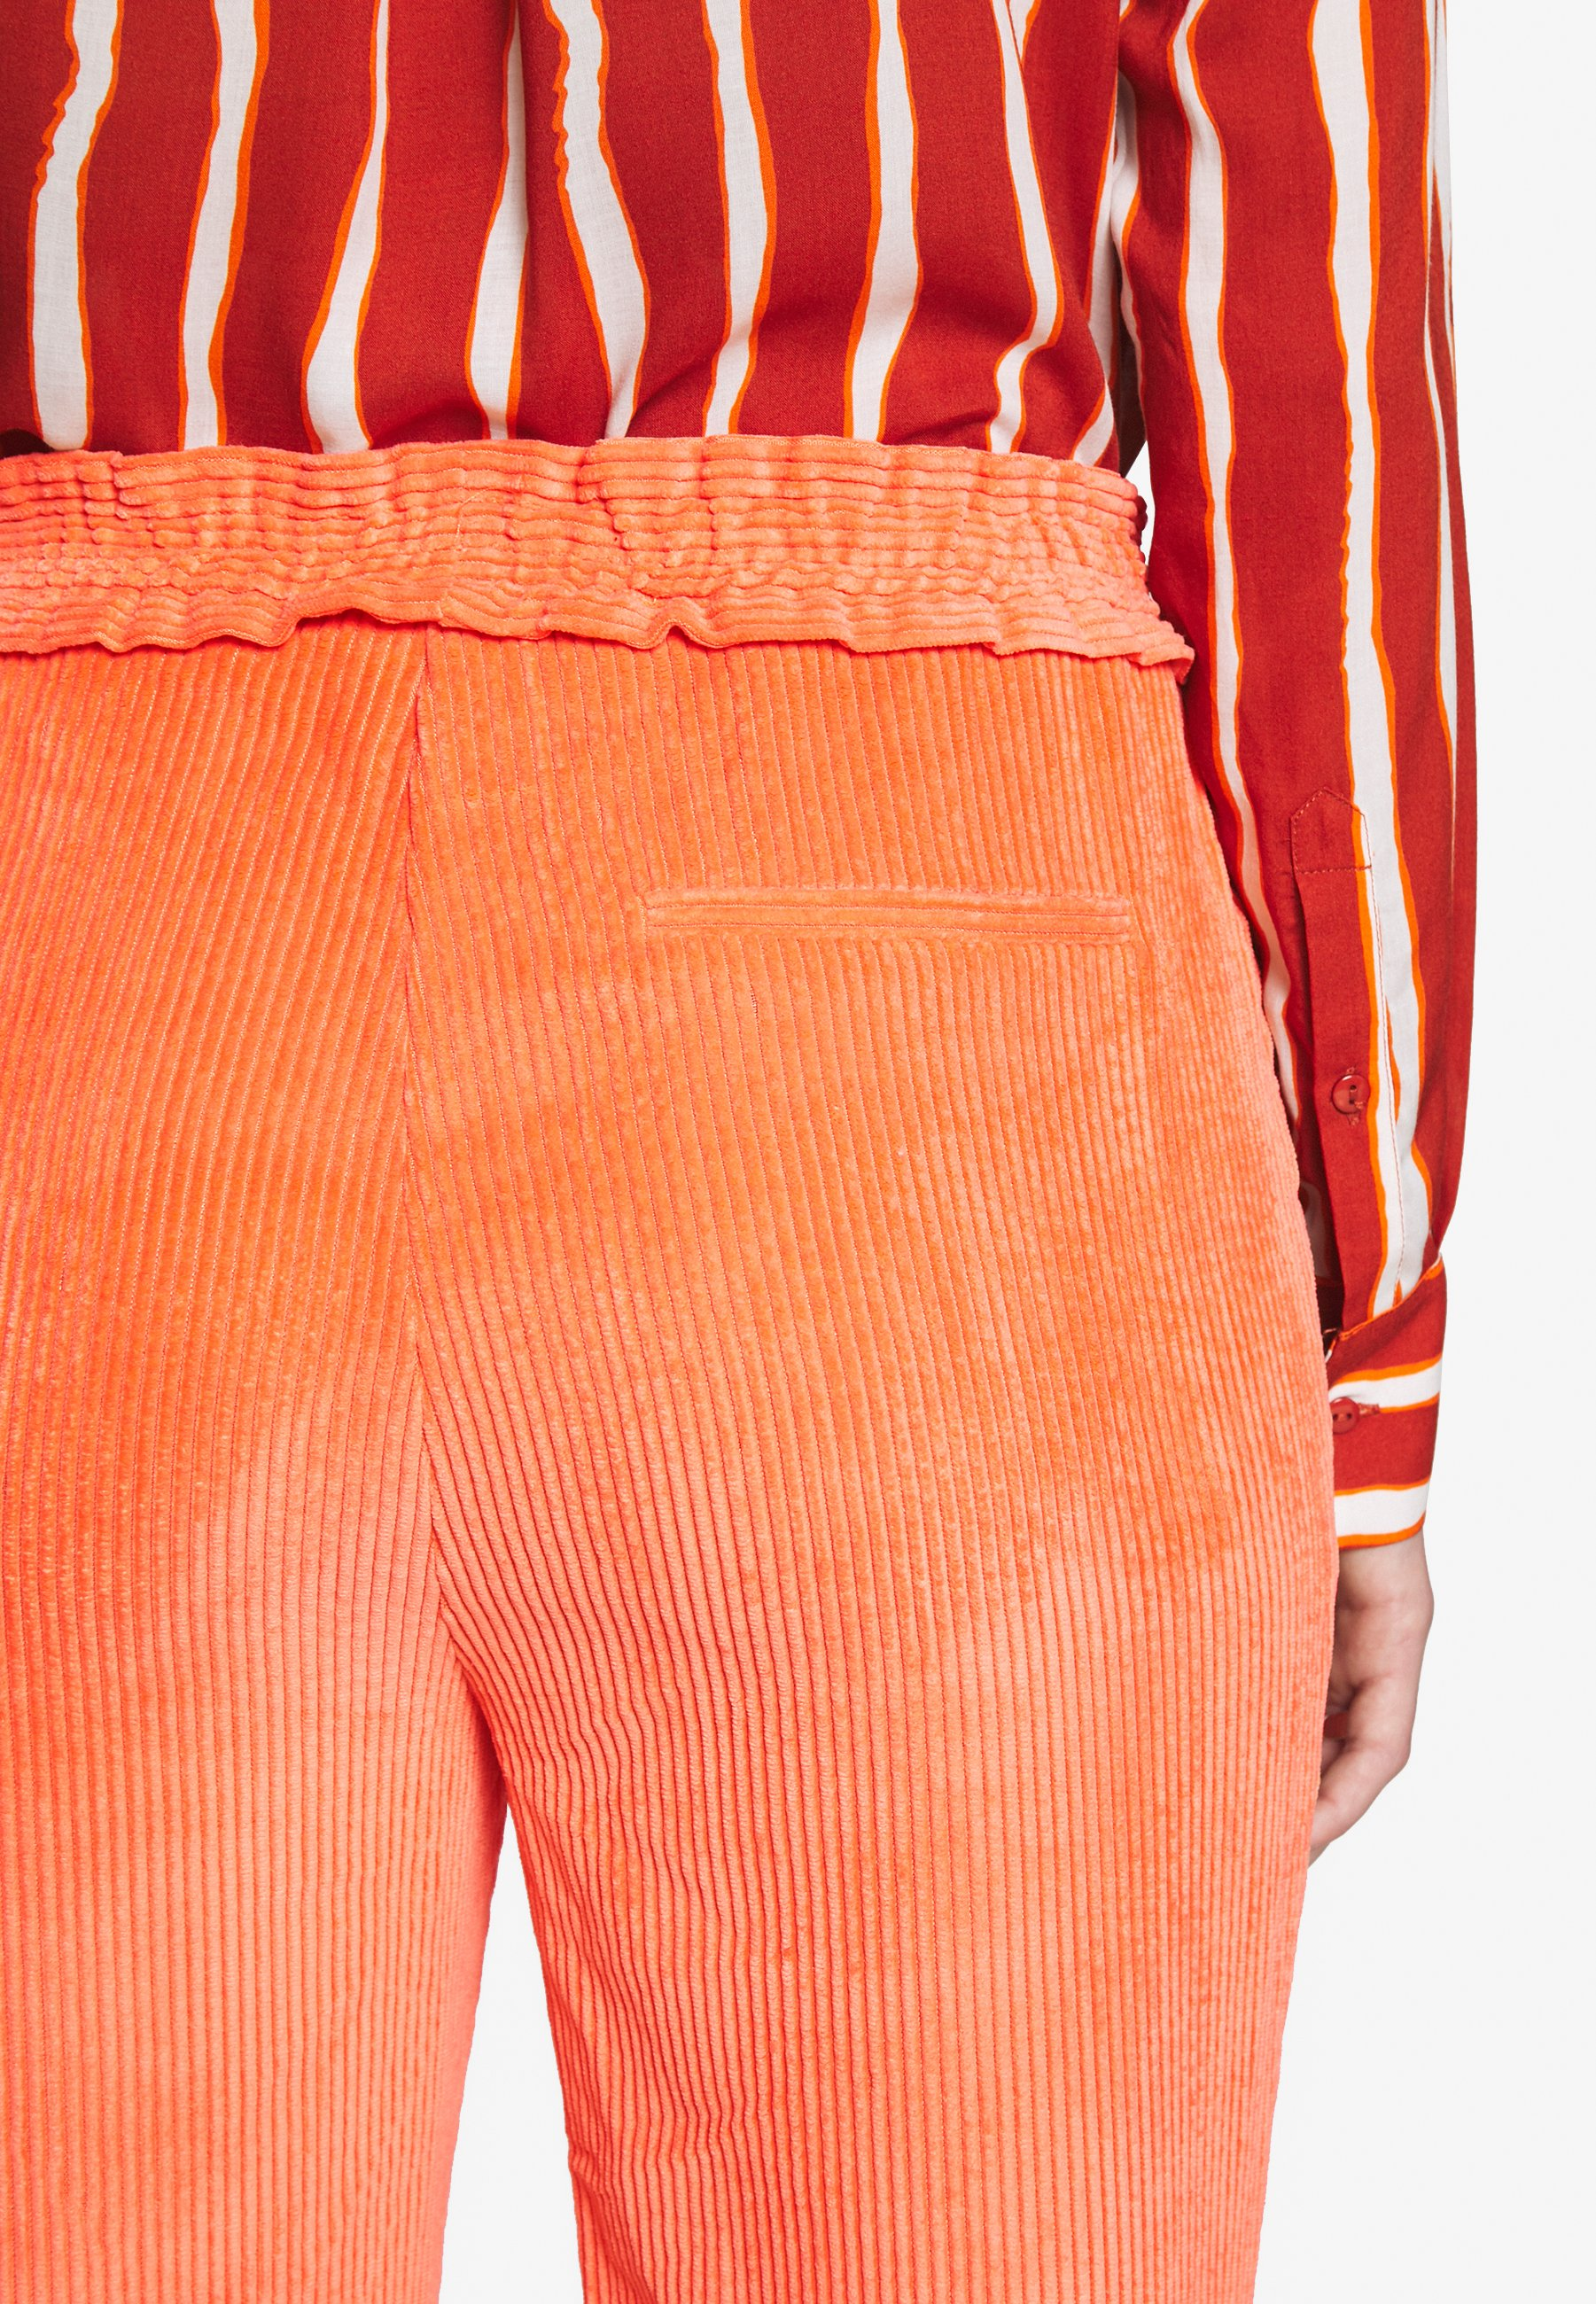 Another-label Valka Pants - Trousers Melon UK